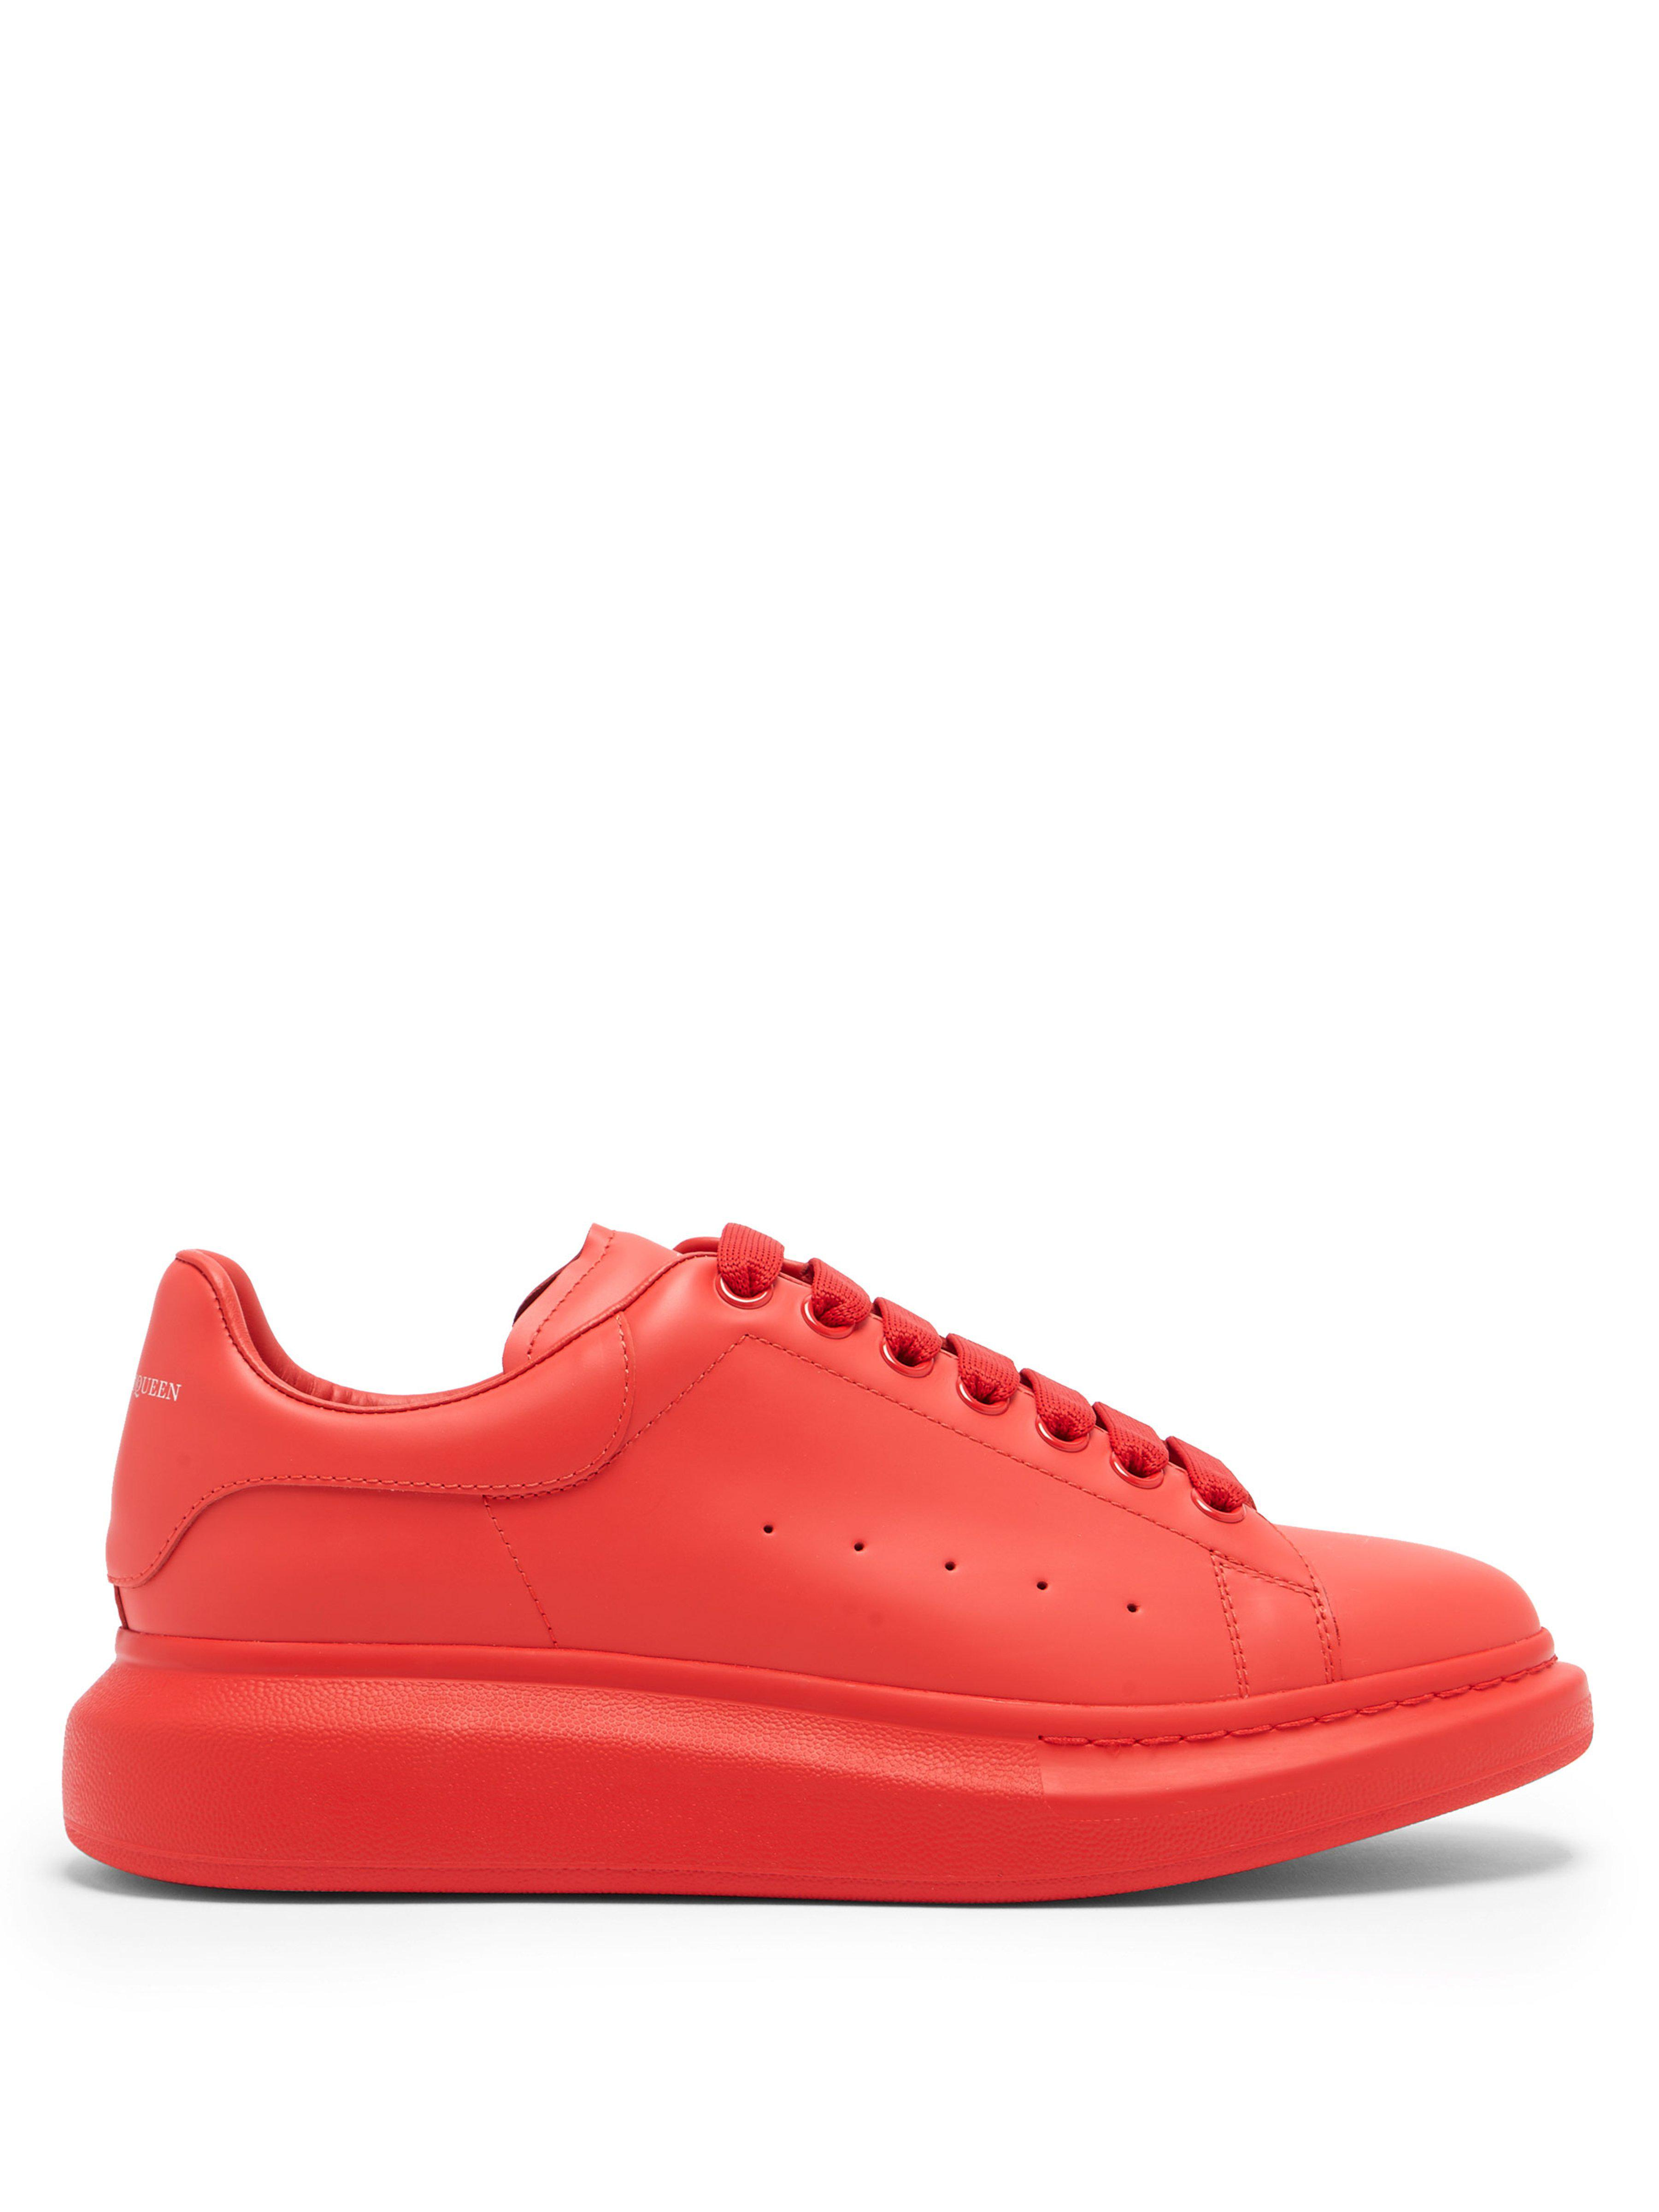 fcf8600126e12 Alexander McQueen Raised Sole Low Top Leather Trainers in Red for ...